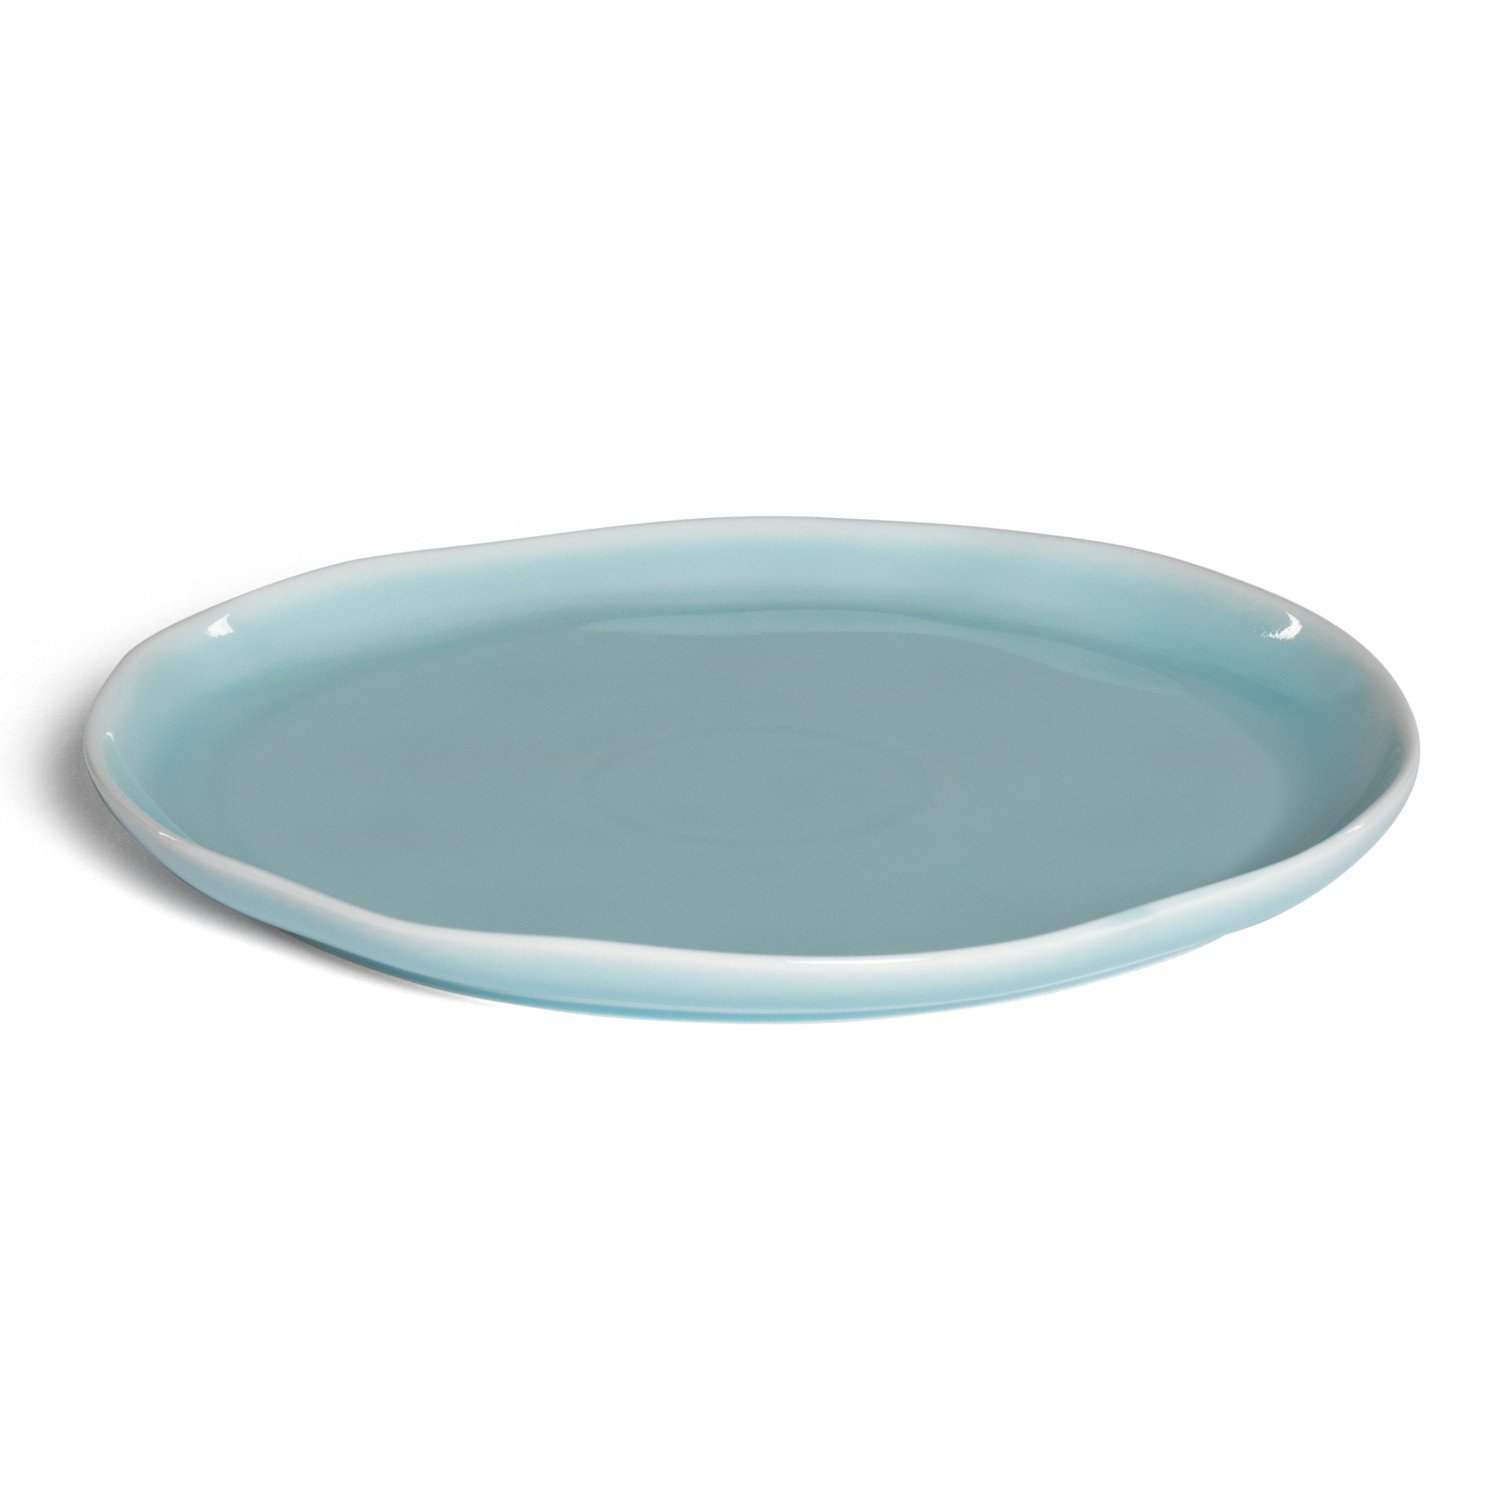 Pack of 6 Biöh Small Plates, gallery image 1